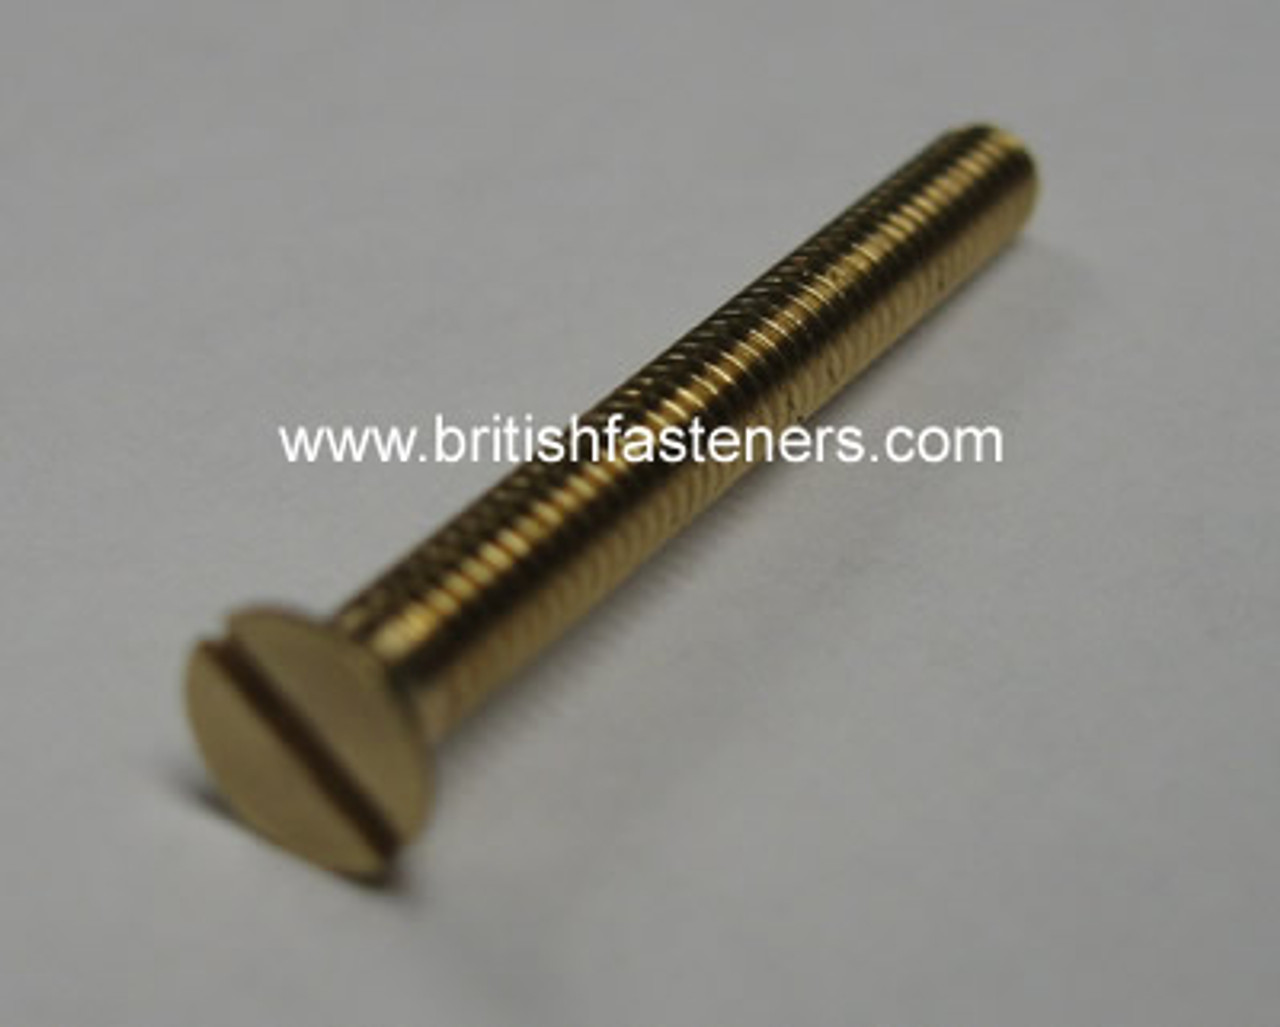 "BA SCREW BRASS C-SUNK 6 BA x 1"" - (2966)"